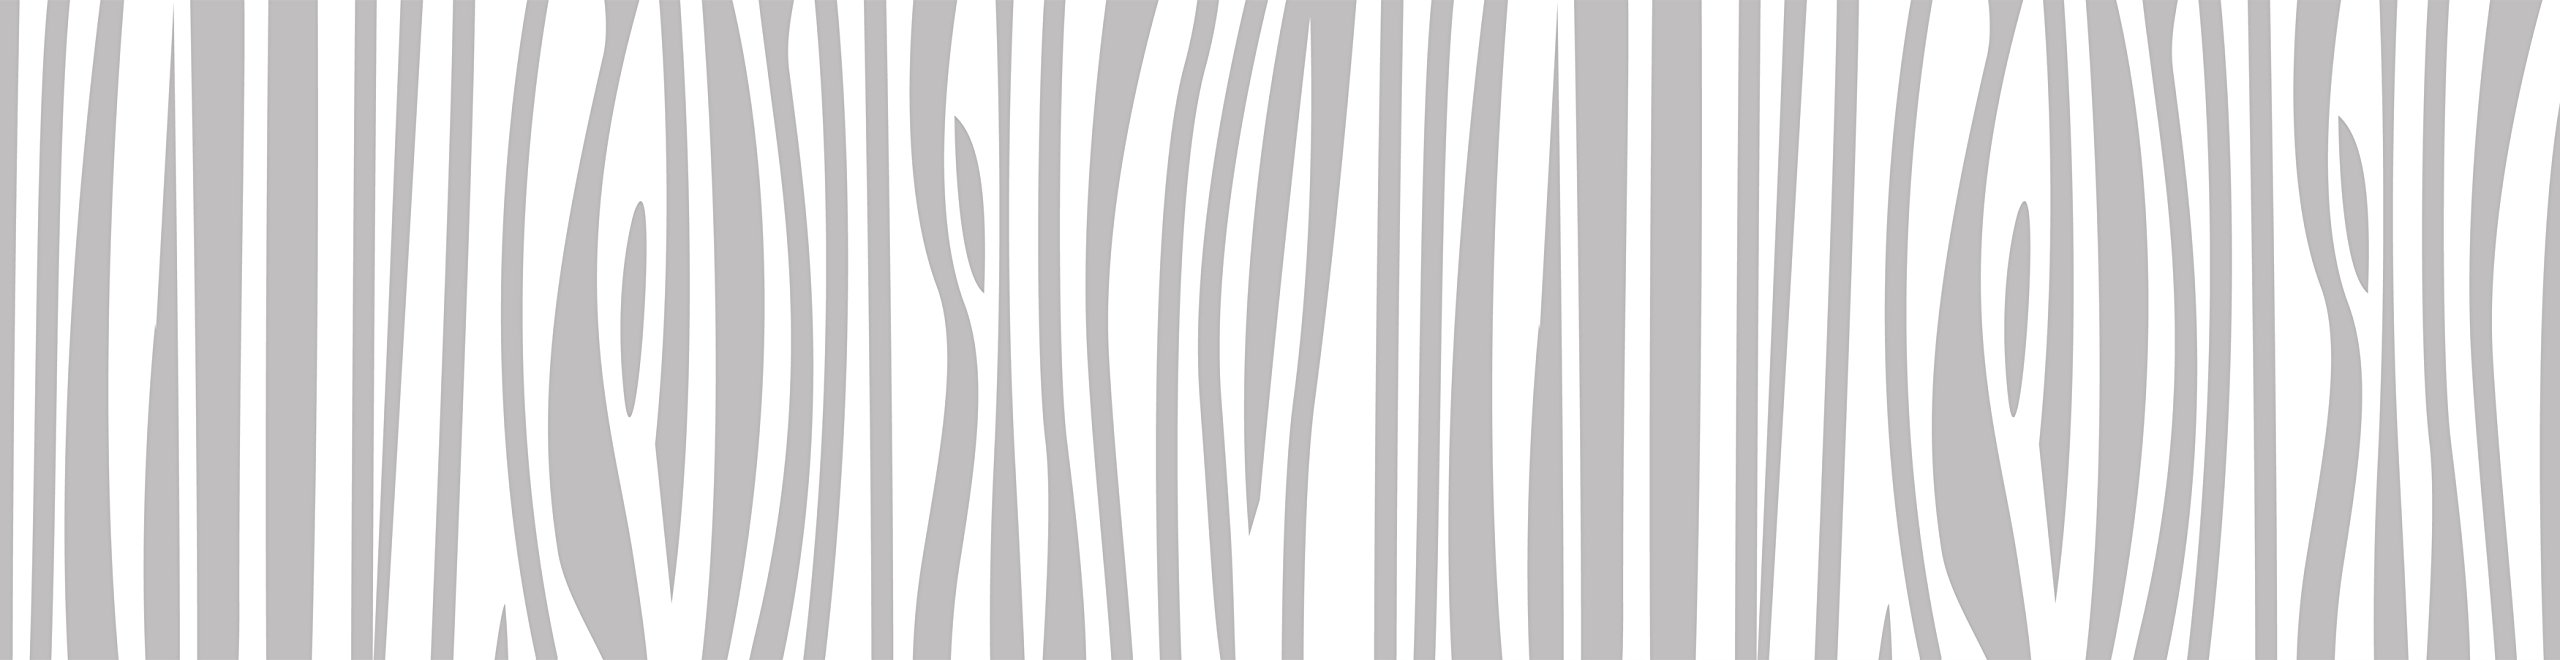 Sweet Jojo Designs Grey and White Wood Grain Wallpaper Wall Border for Woodsy Collection by